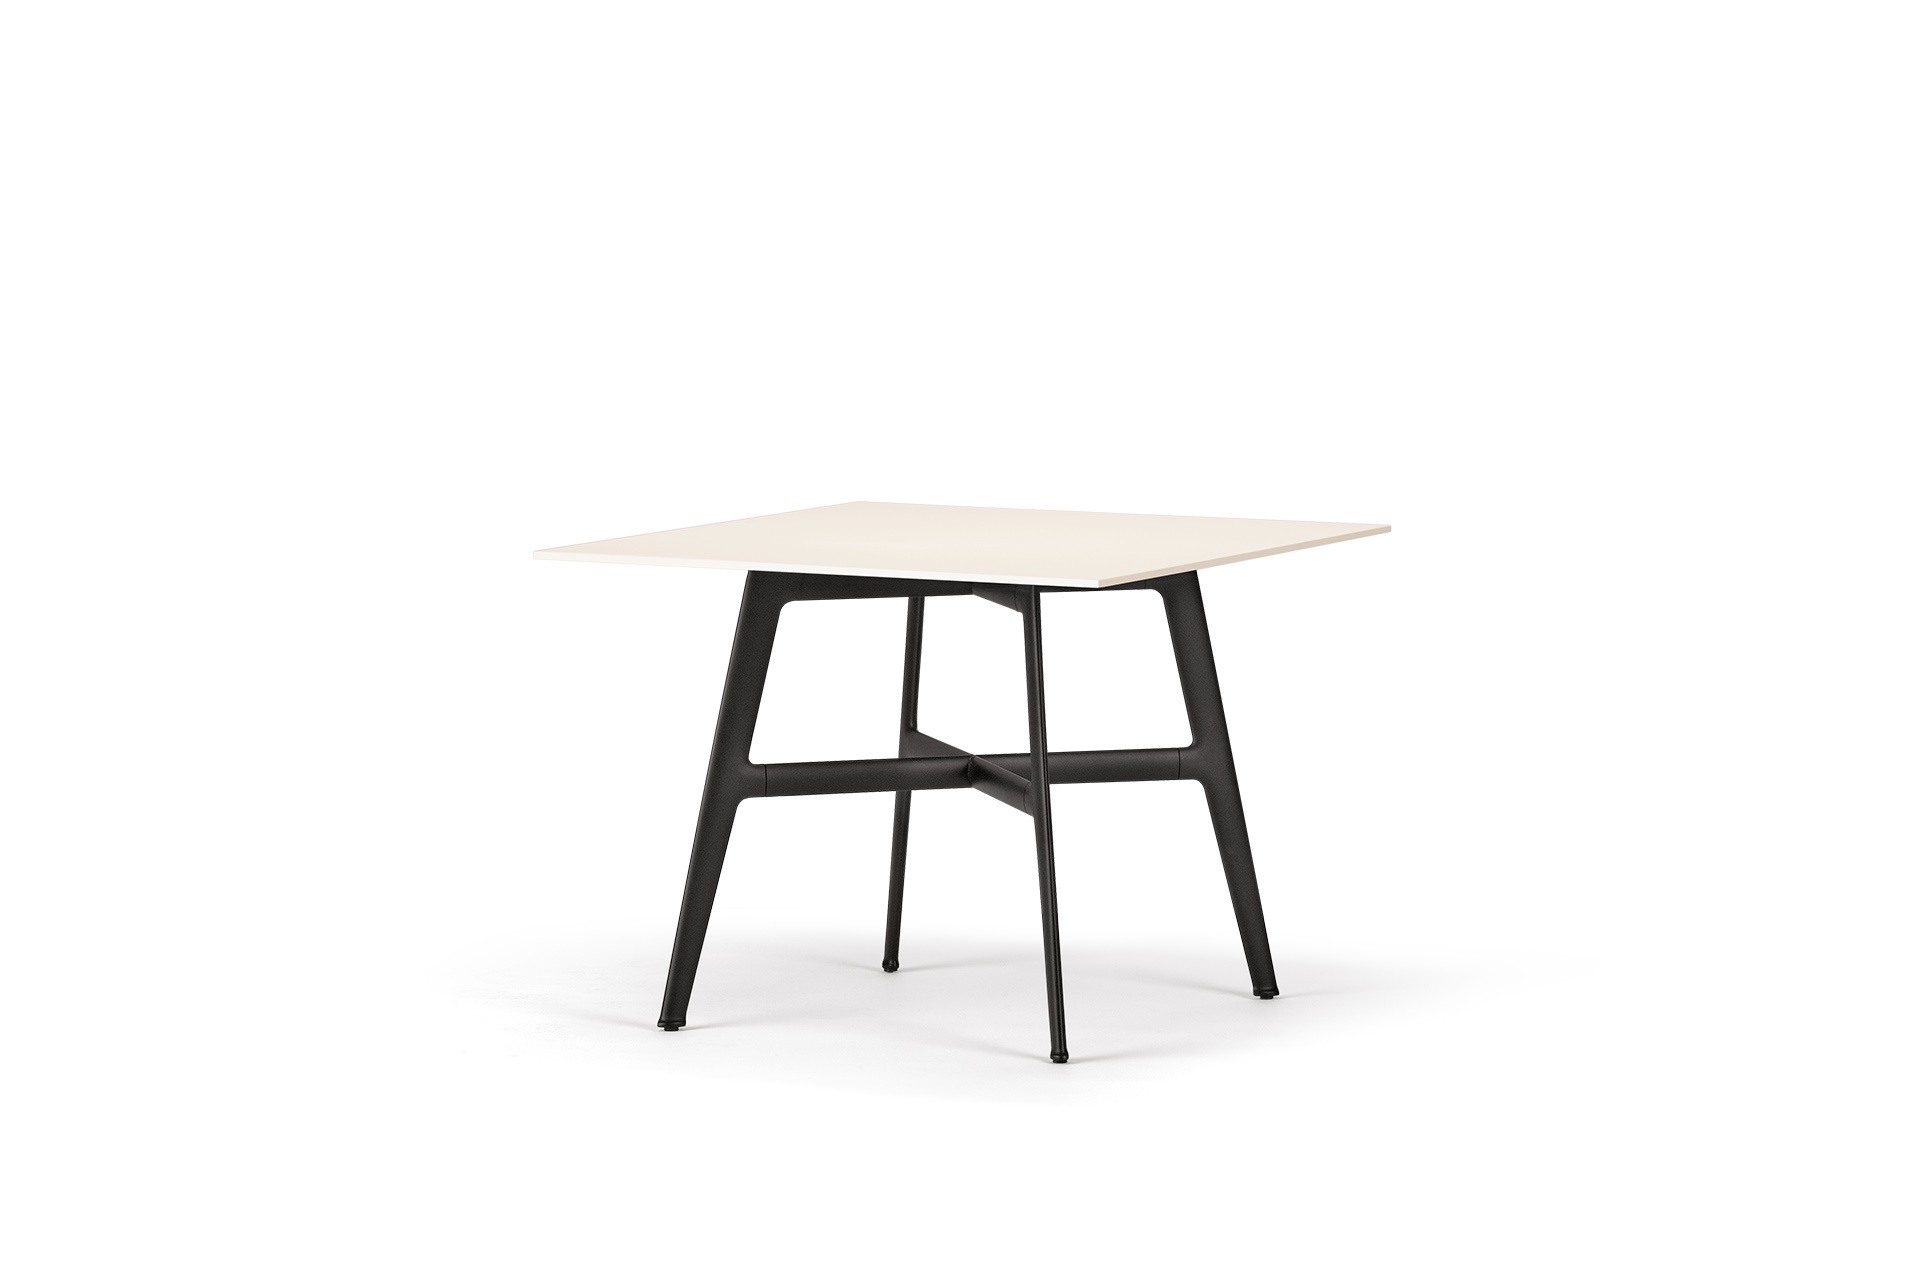 Dedon Seax Diningtable 100x100cm White-Black